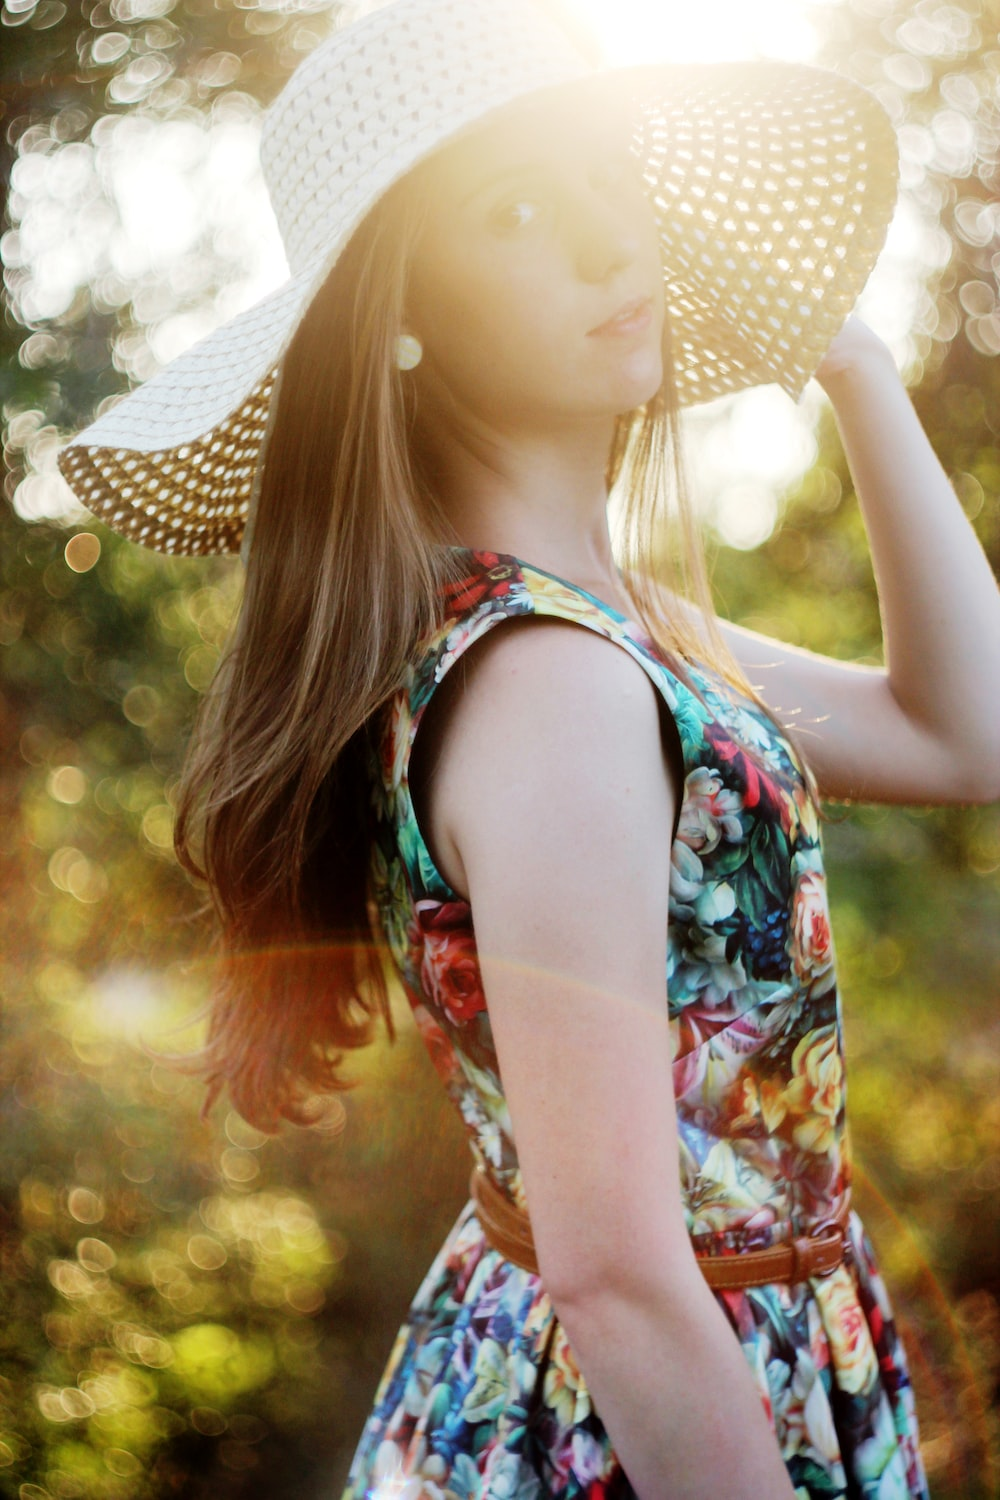 woman in white and blue floral tank top wearing white and black polka dot sun hat